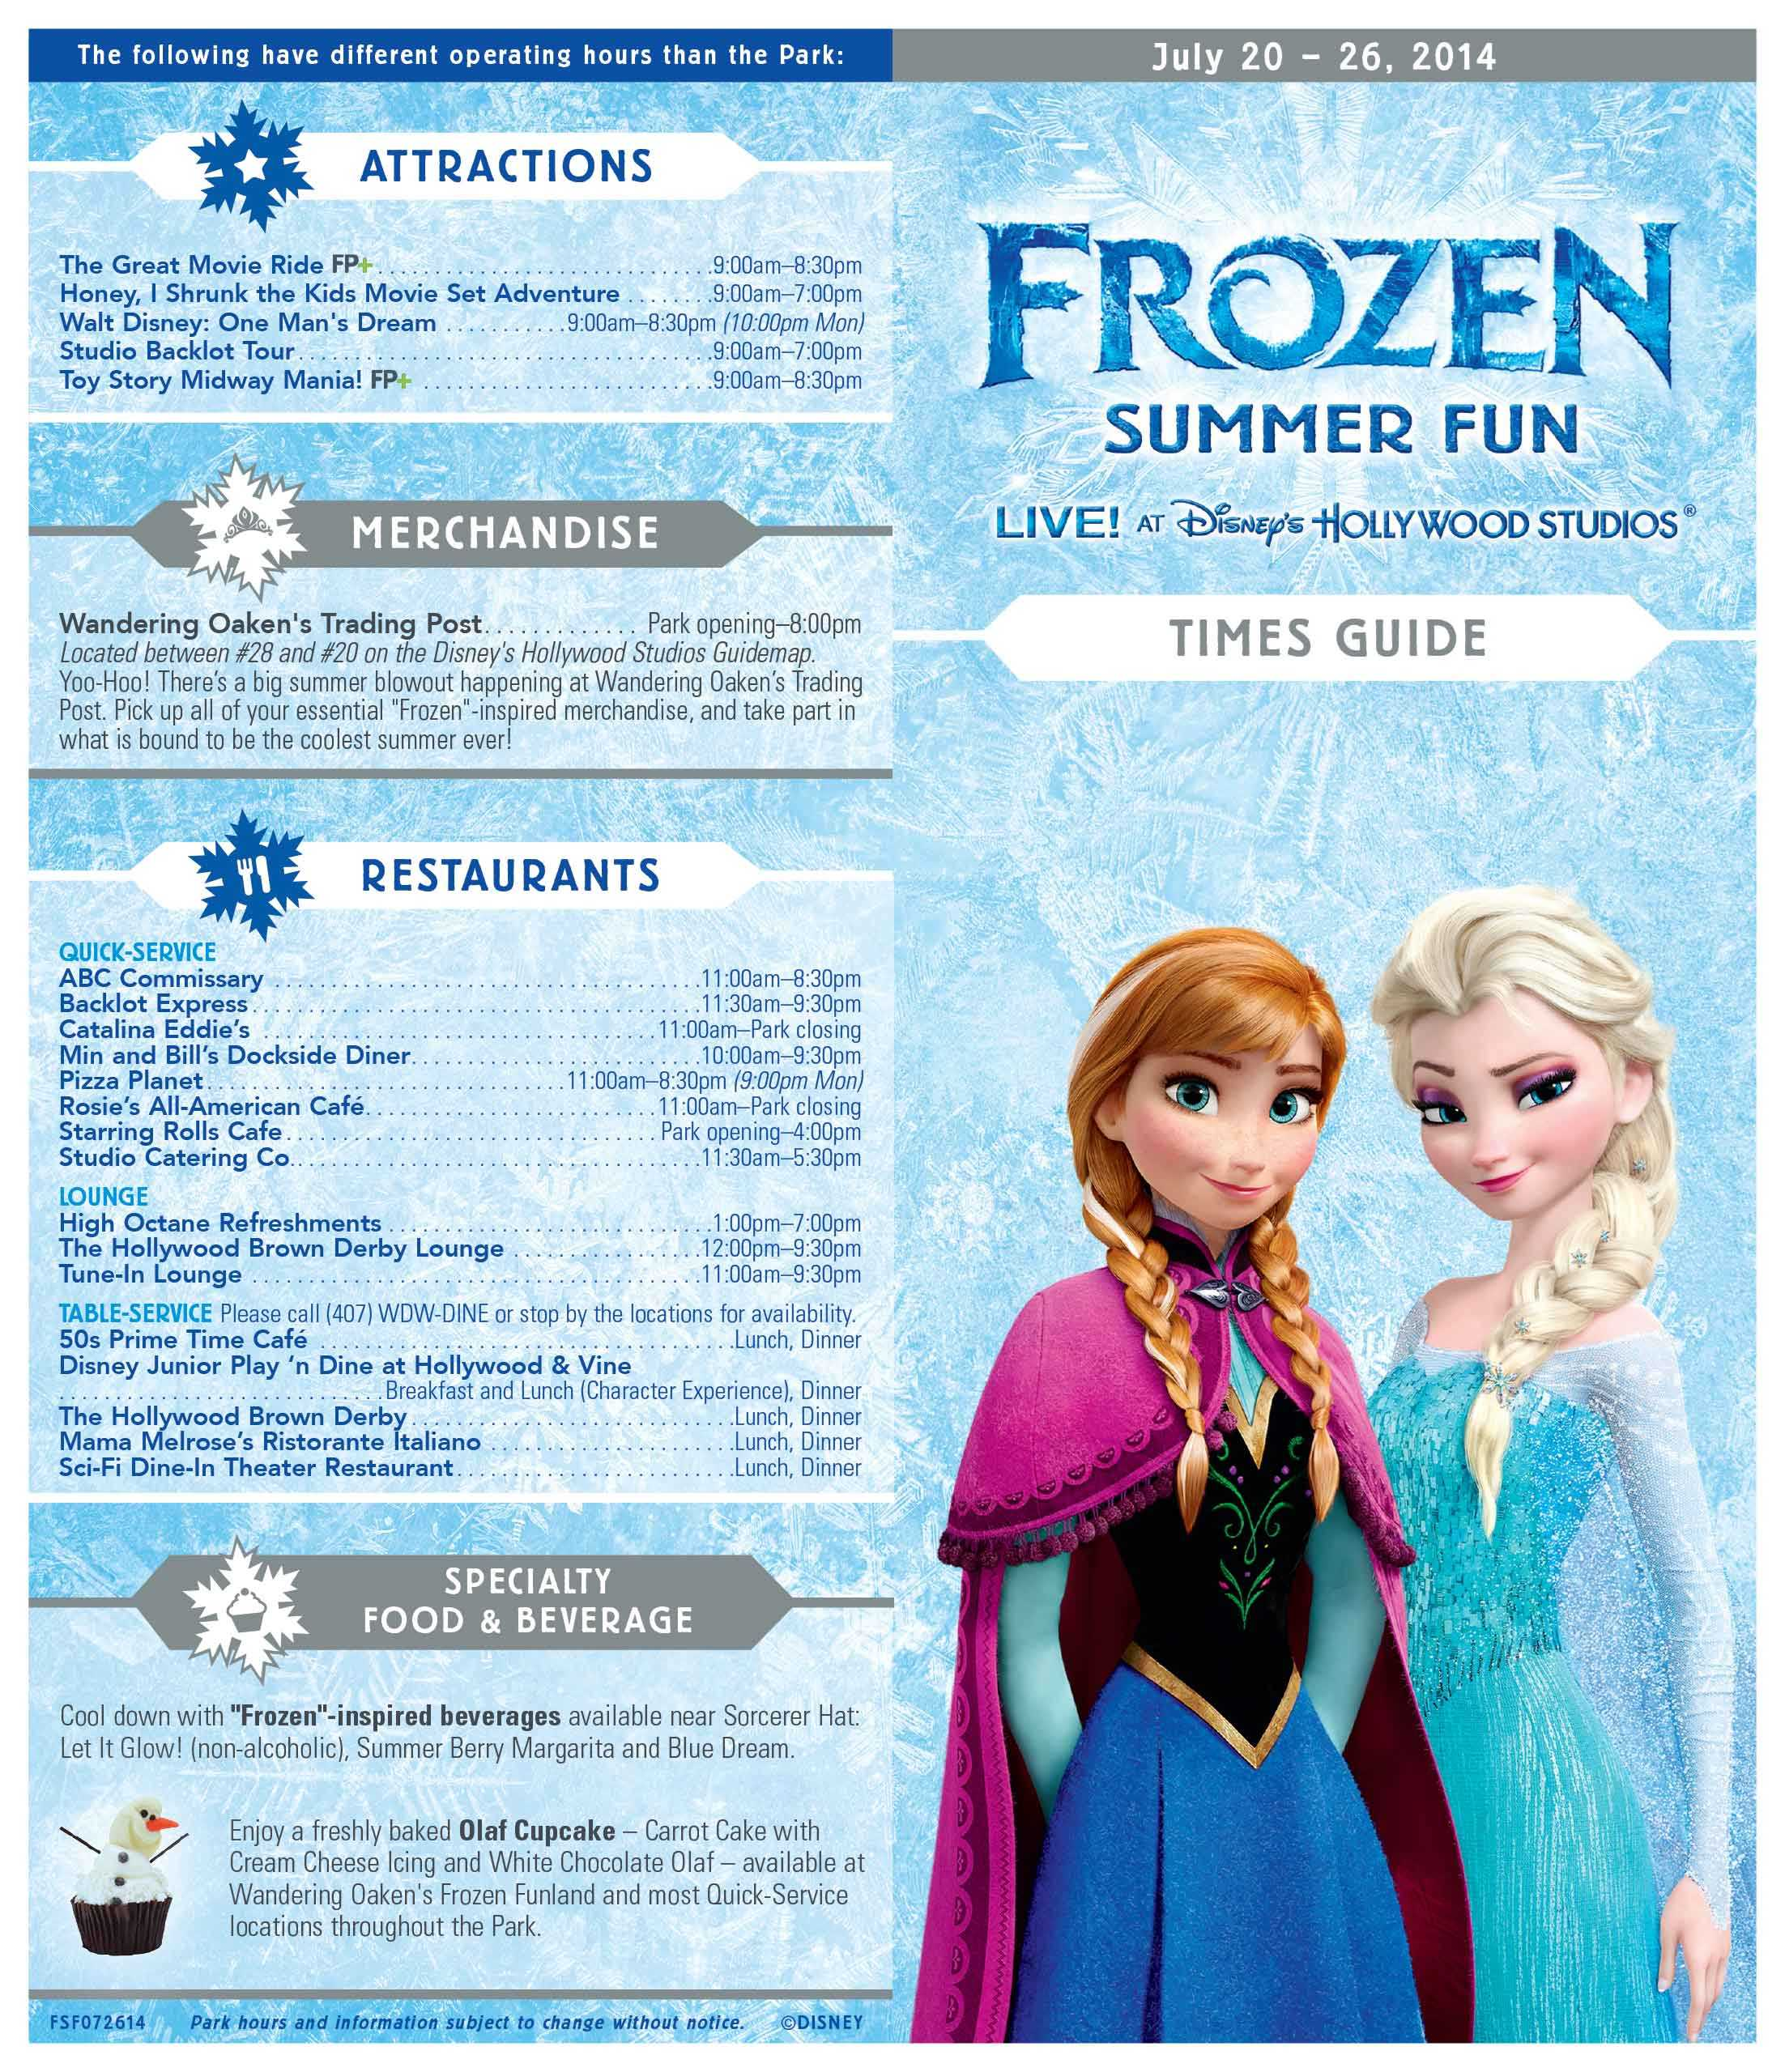 Frozen Summer Fun - LIVE at Disney's Hollywood Studios time guide front